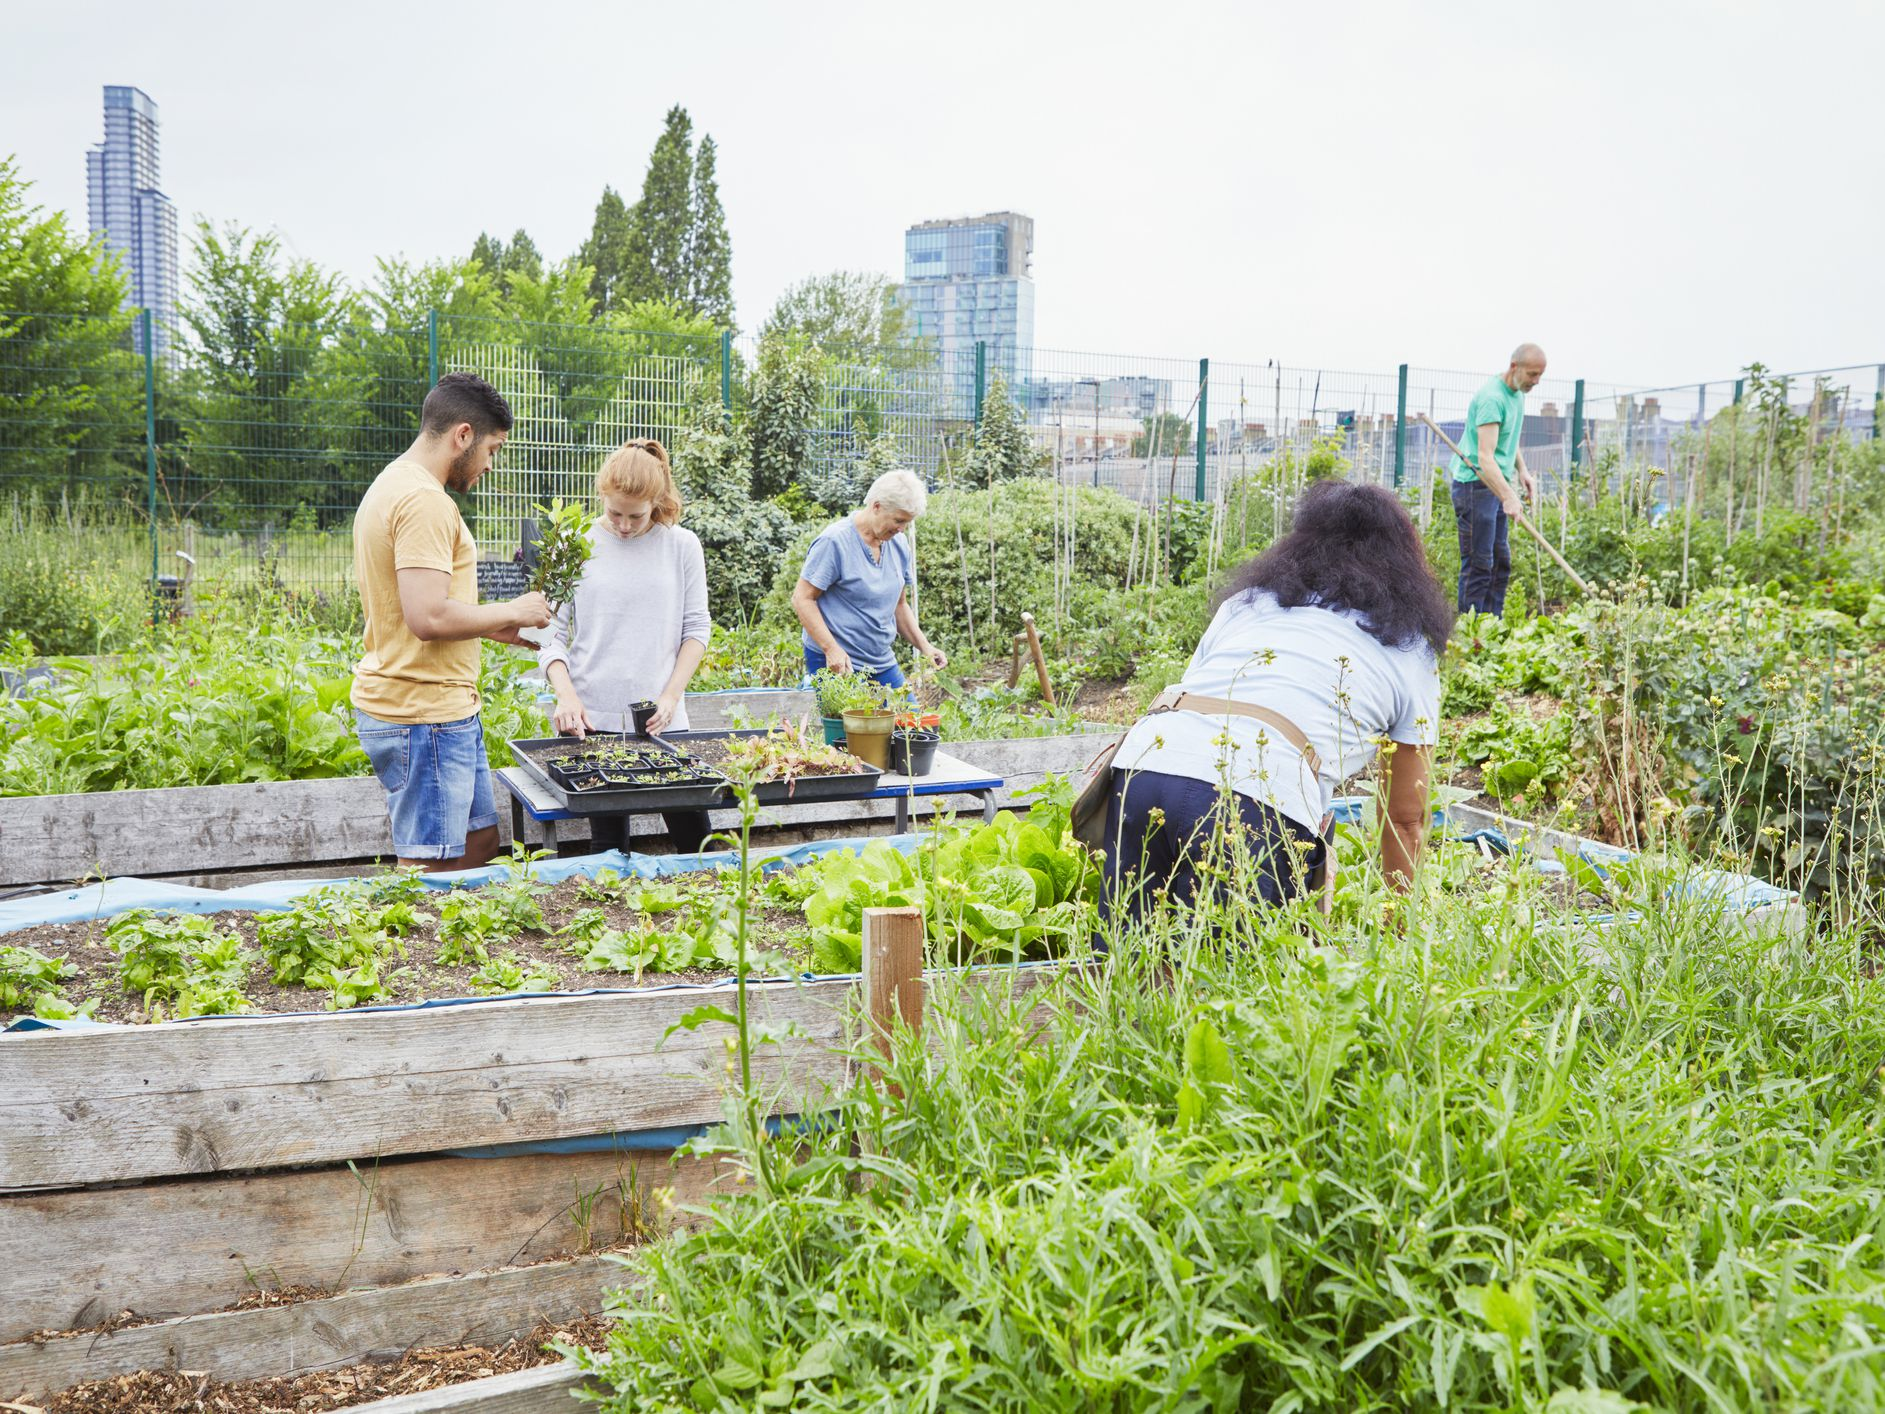 Are You Wondering How to Start a Community Garden?